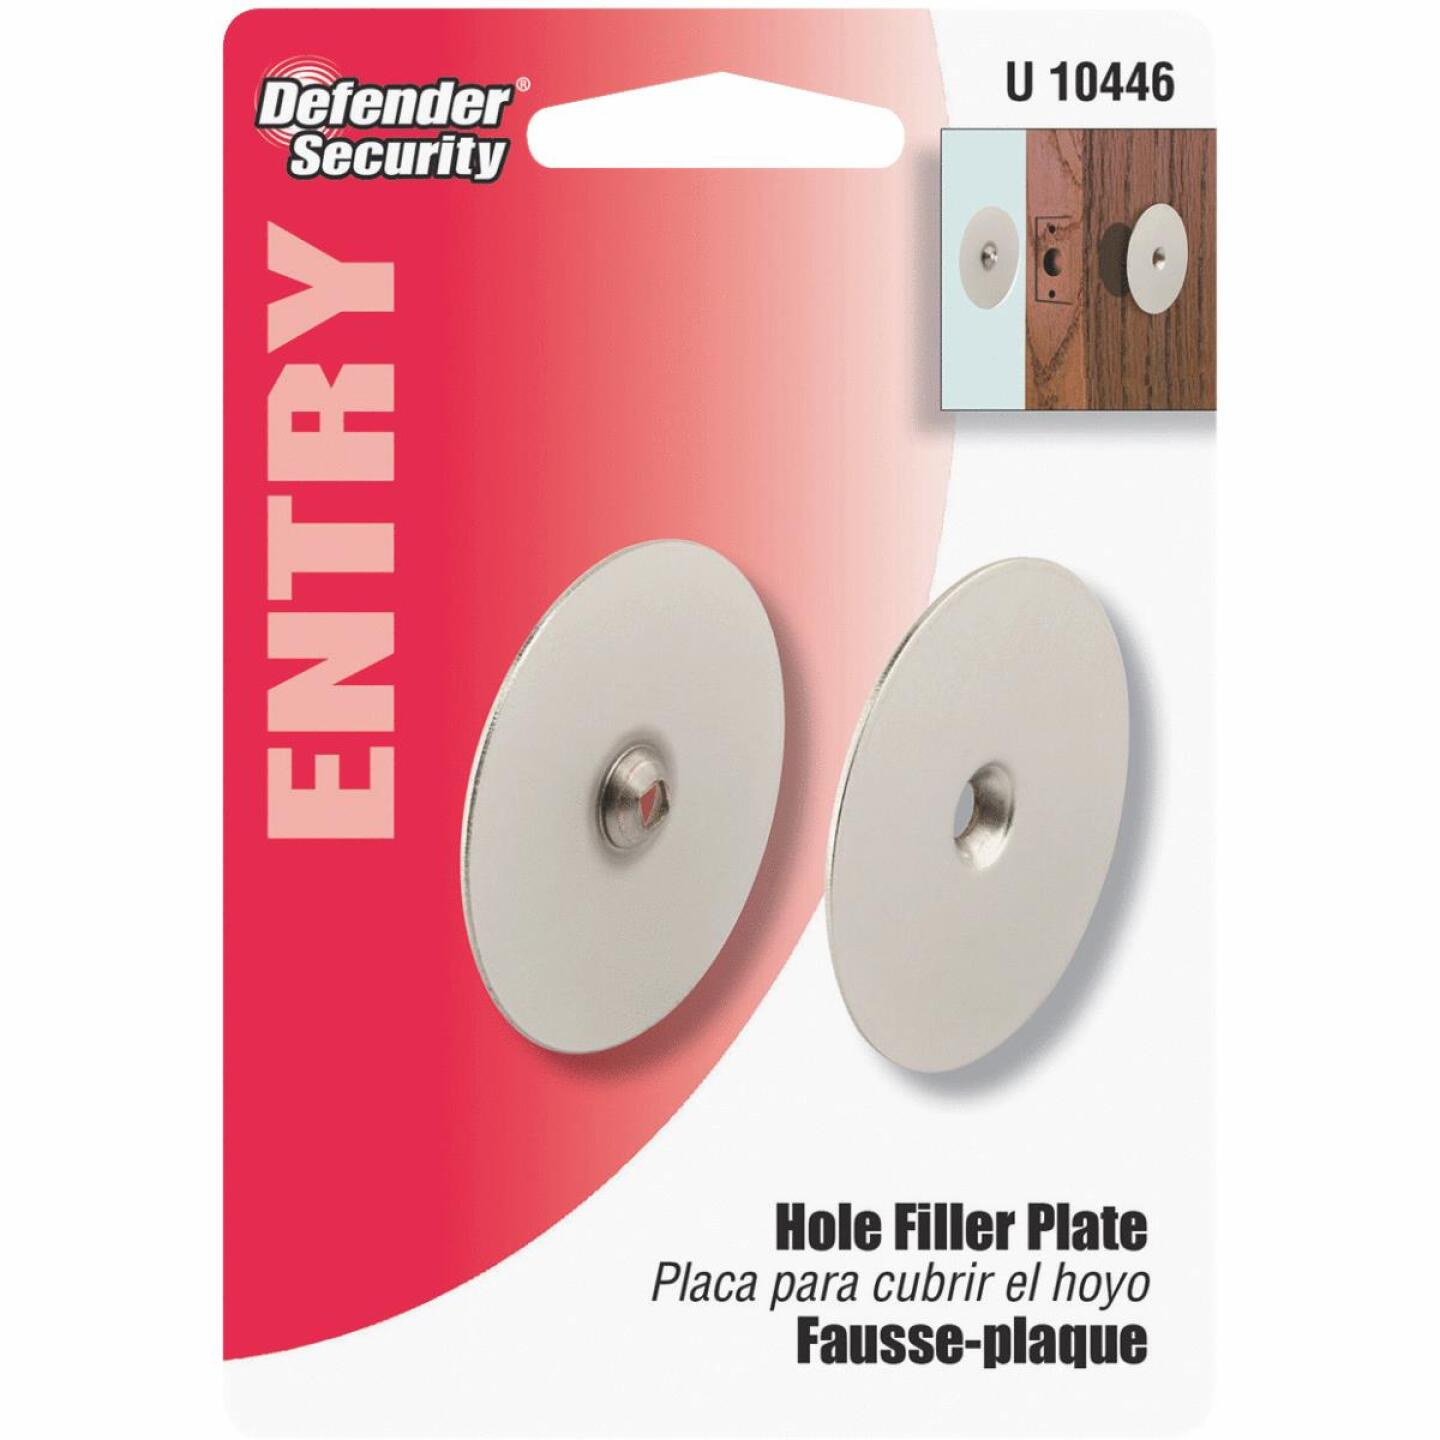 Defender Security 2-5/8 In. Satin Nickel Hole Cover Plate Image 2